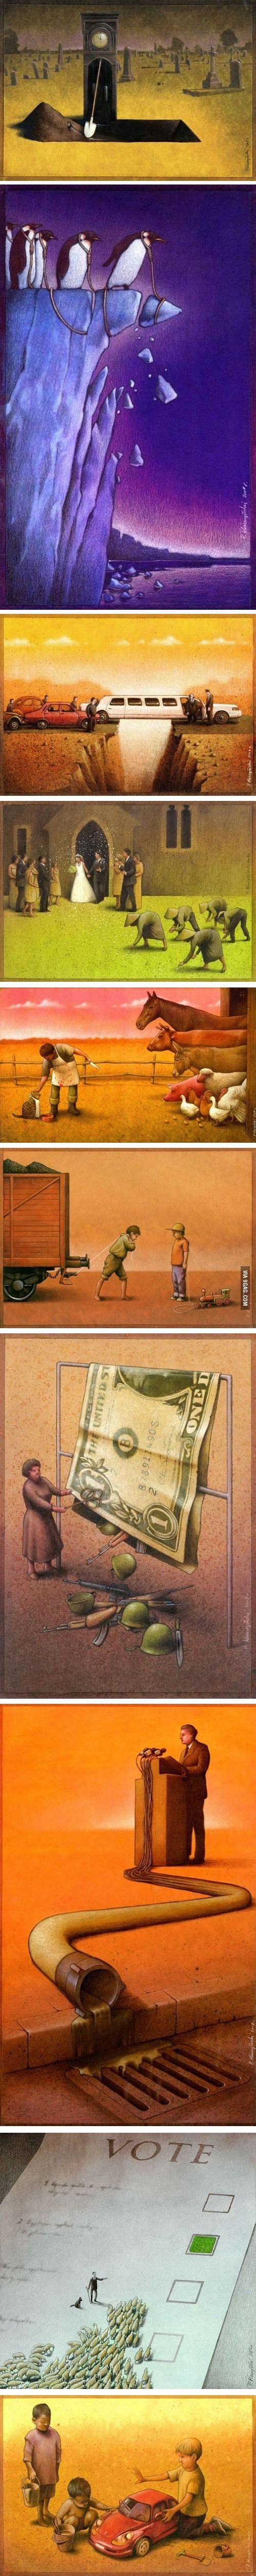 Illustrations by Paul Kuczynski